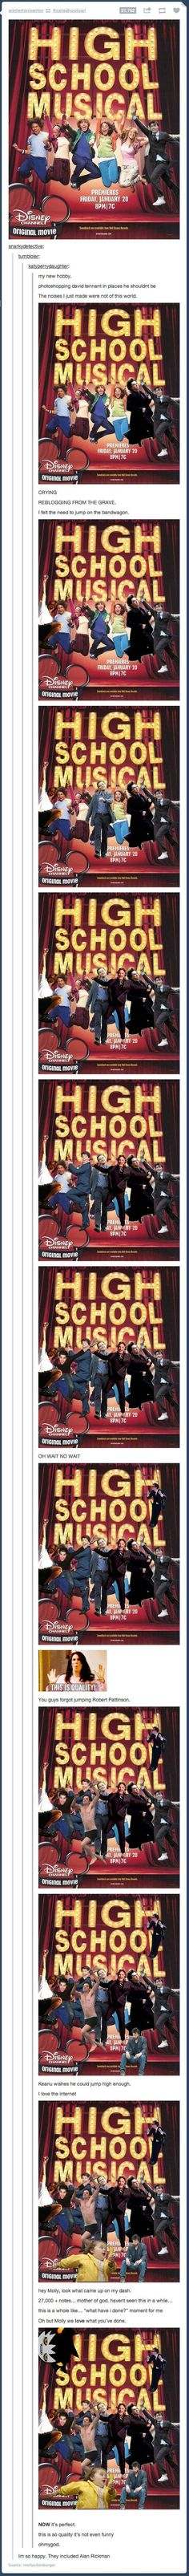 High School Musical just got better <<--- it was never good. Now it's just fun to mess with. Lol.